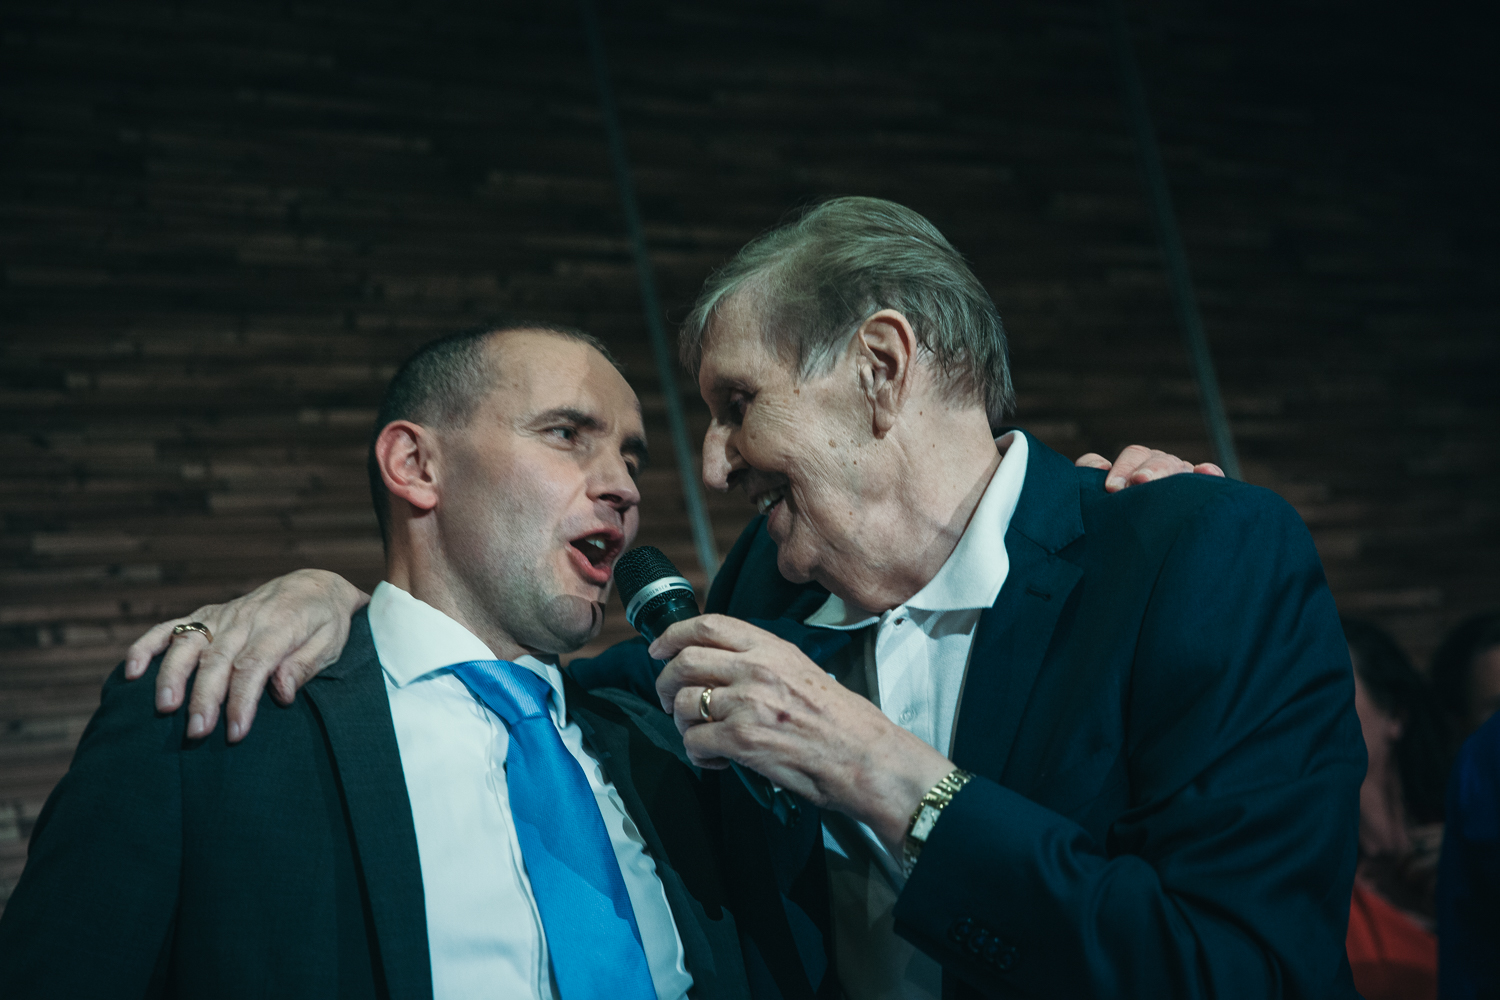 Guðni singing with singer Raggi Bjarna at his party